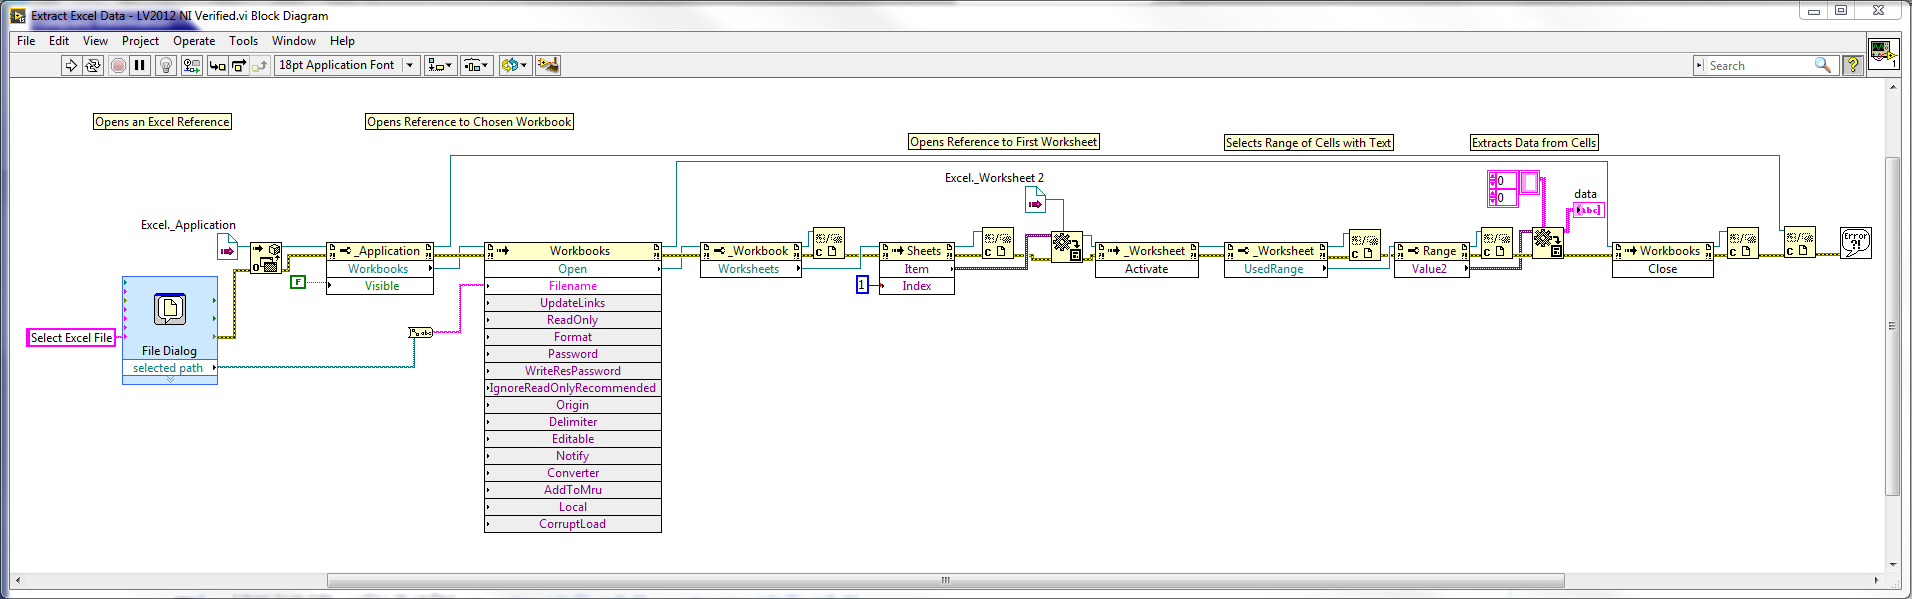 Extract All Data From Excel Worksheet Discussion Forums National Block Diagram Instruments